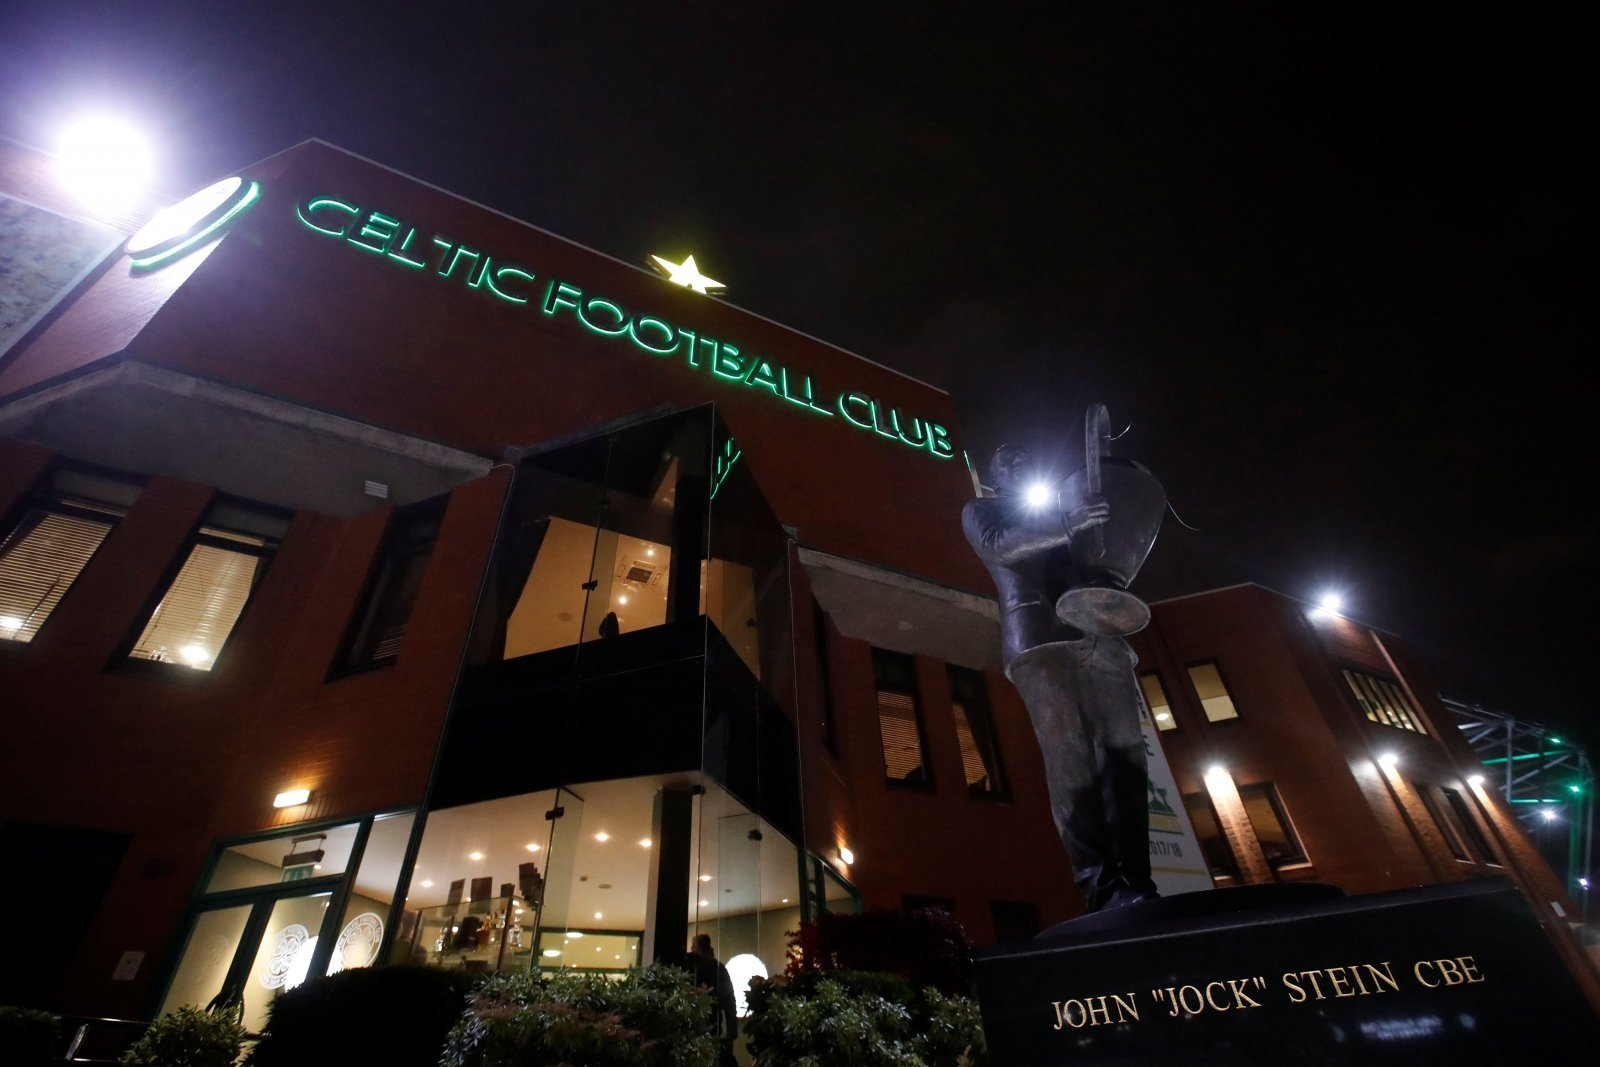 Celtic: Fans react to video of their win over Lazio